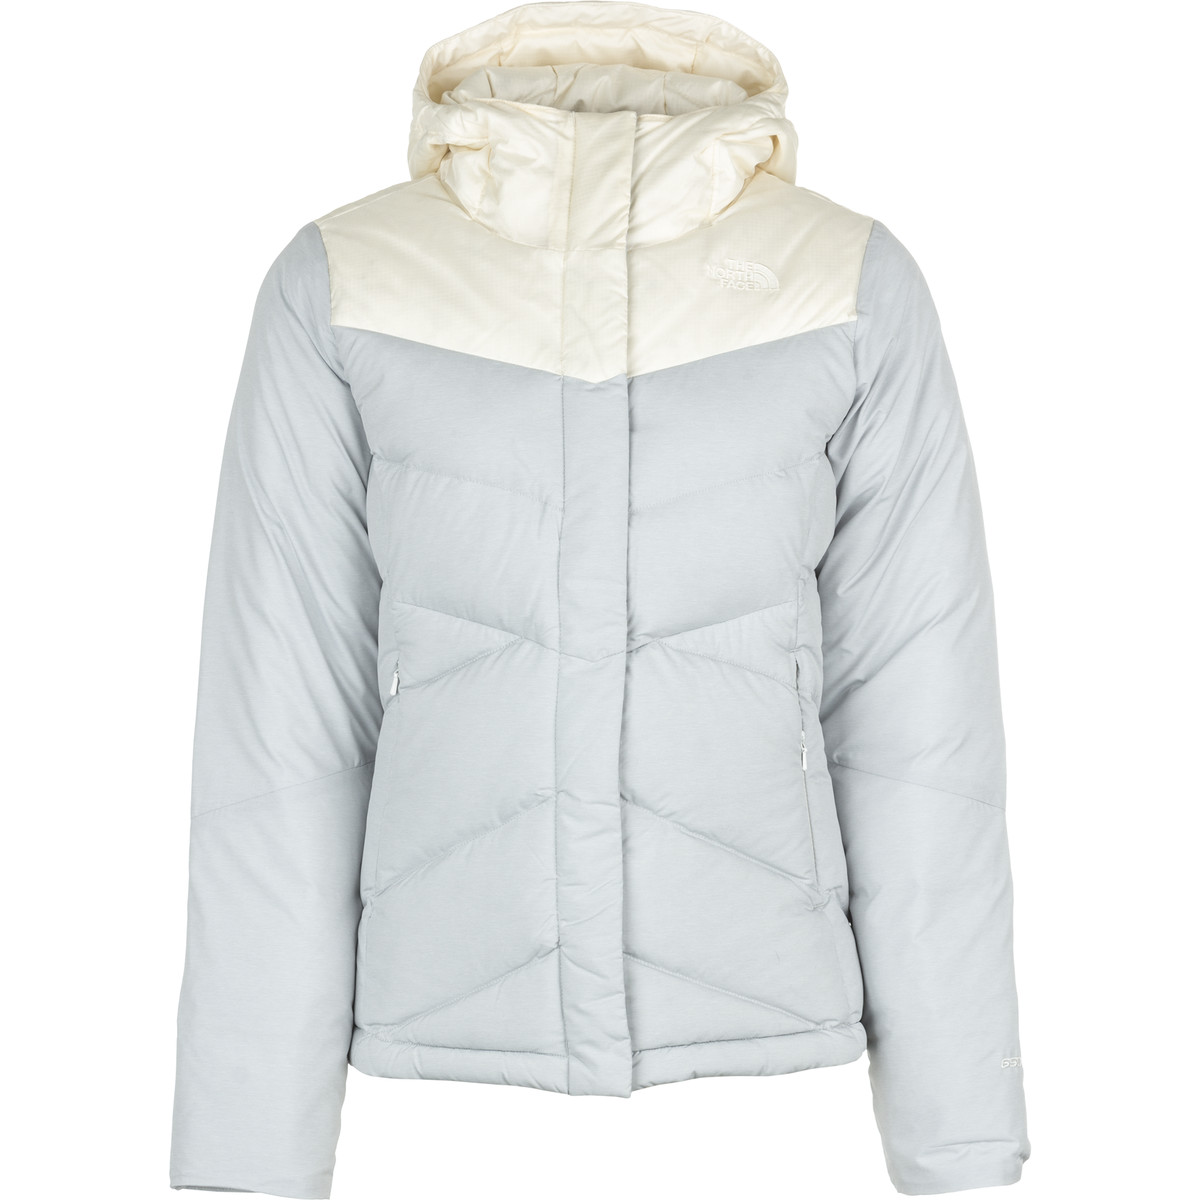 The North Face Kailash Hooded Jacket